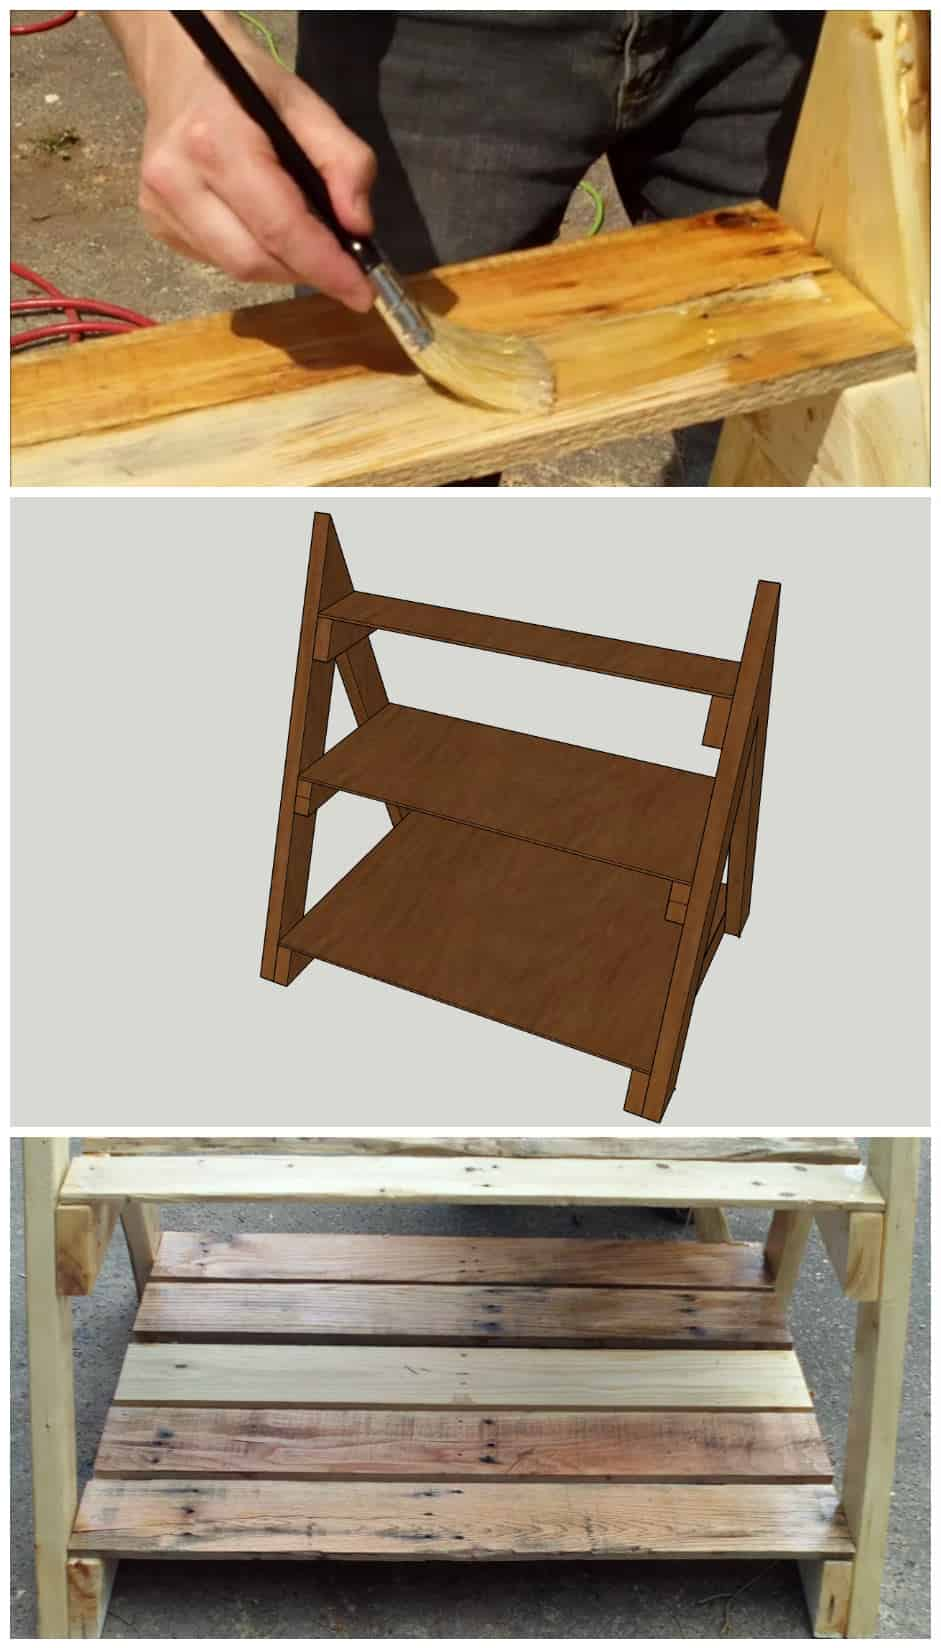 Pallet Tutorials • DIY Wood Pallet Projects & Ideas • 1001 Pallets